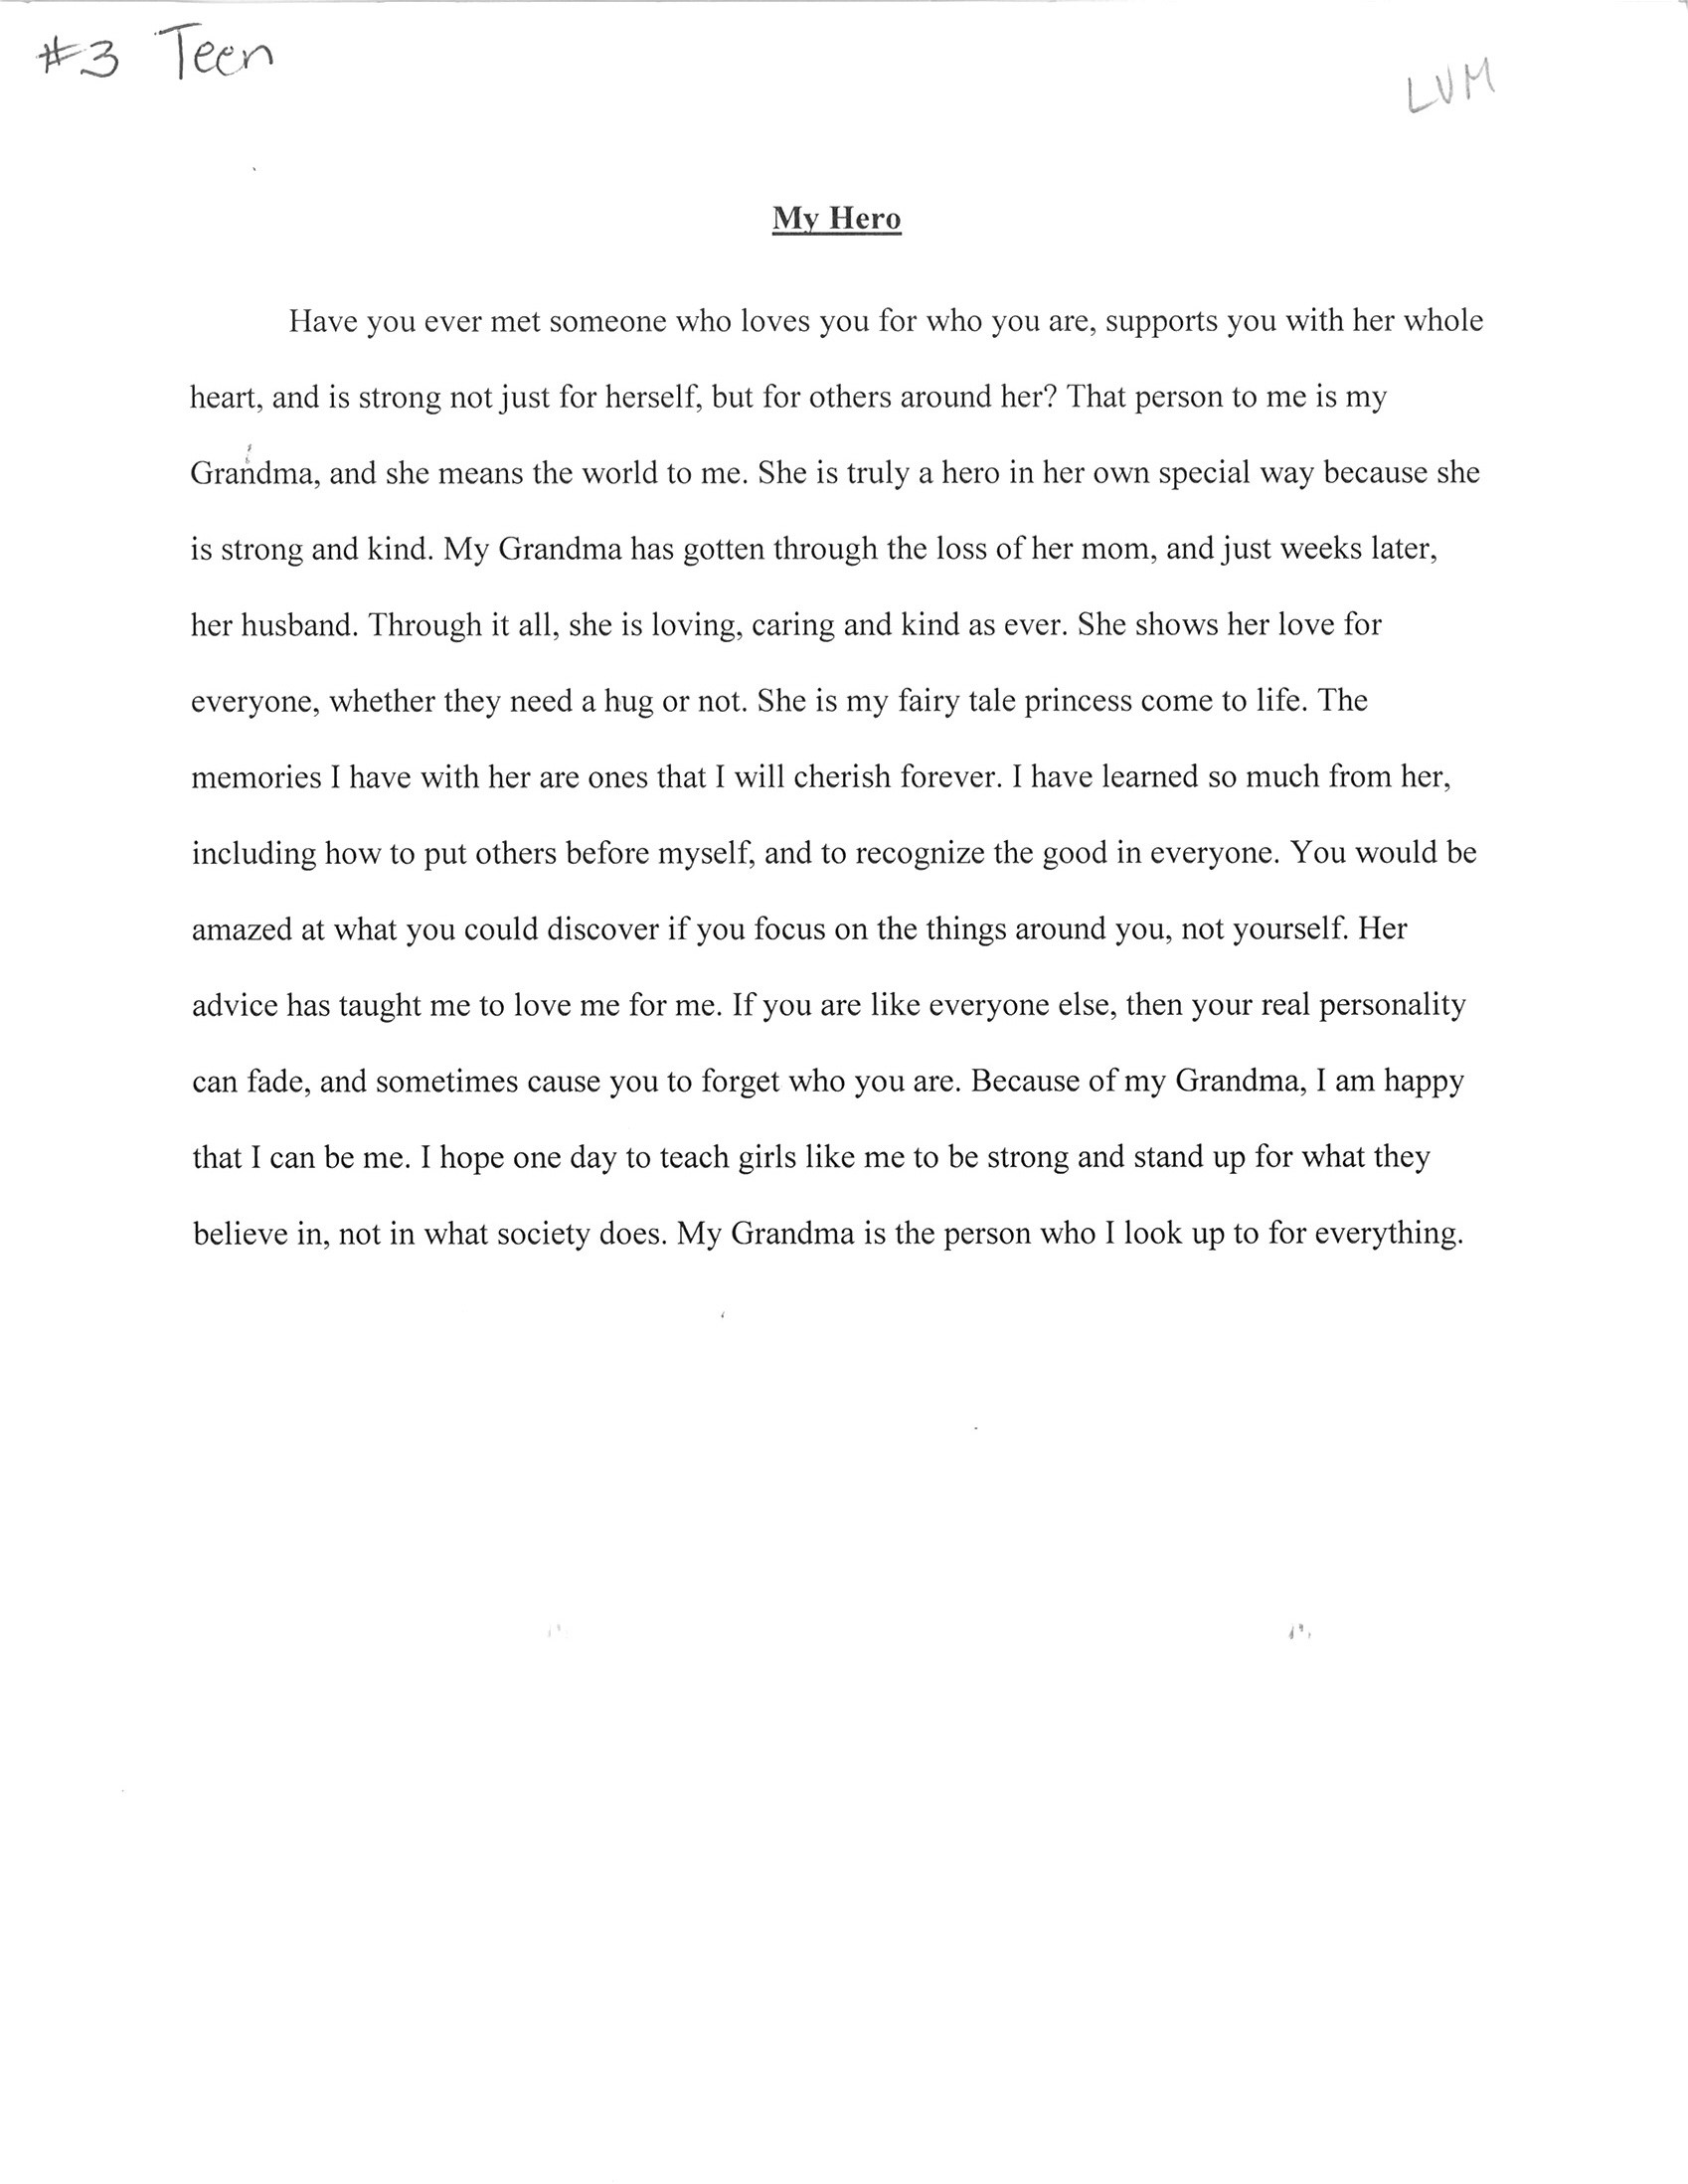 004 Essay Example My Hero Third20place20teen20sarah20horst20 Wondrous In History With Outline Favourite Salman Khan English National Full